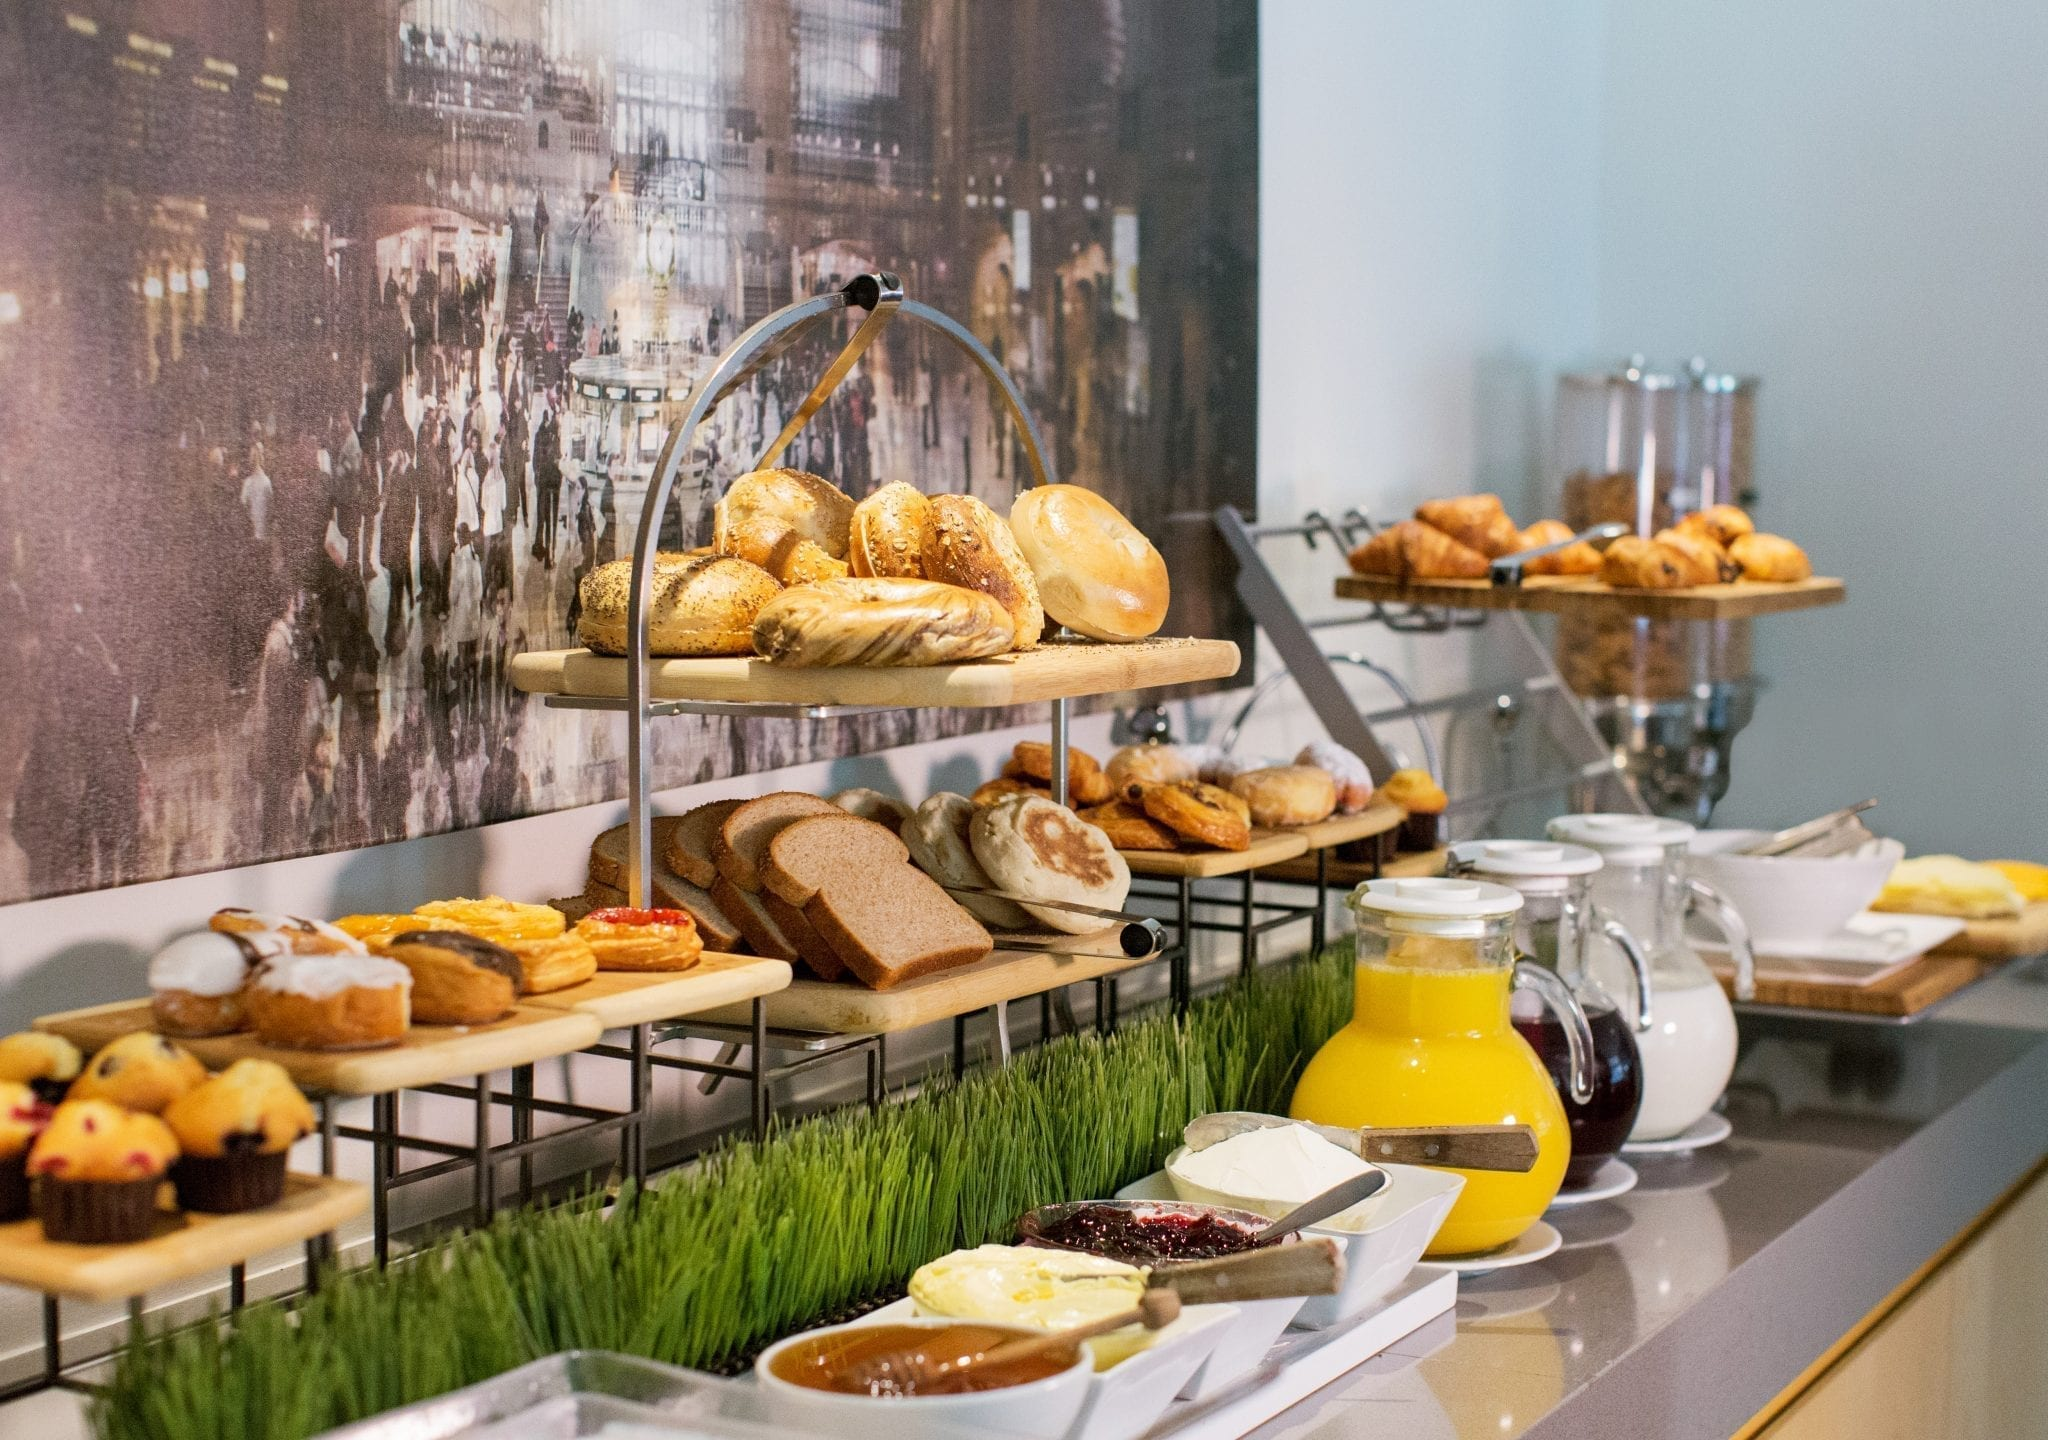 View of a long table containing different breads for breakfast service.